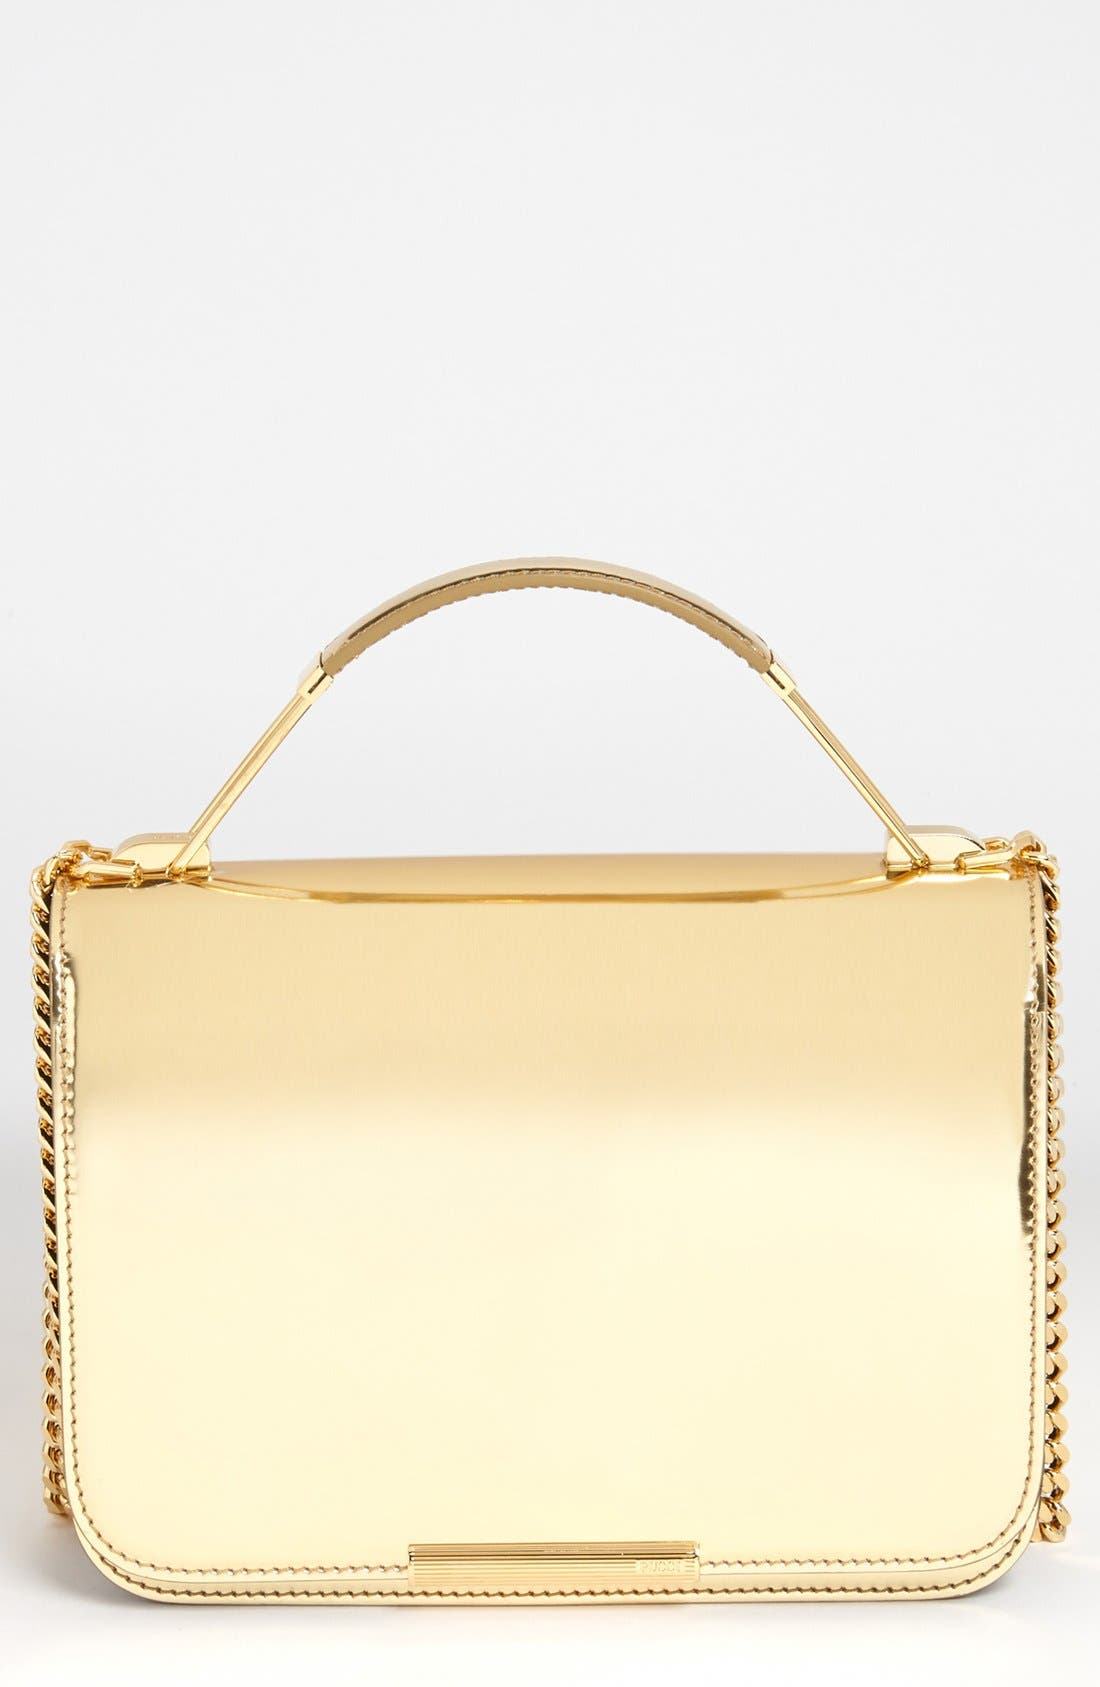 Main Image - Emilio Pucci 'Newton Laminated - Small' Partitioned Leather Shoulder Bag